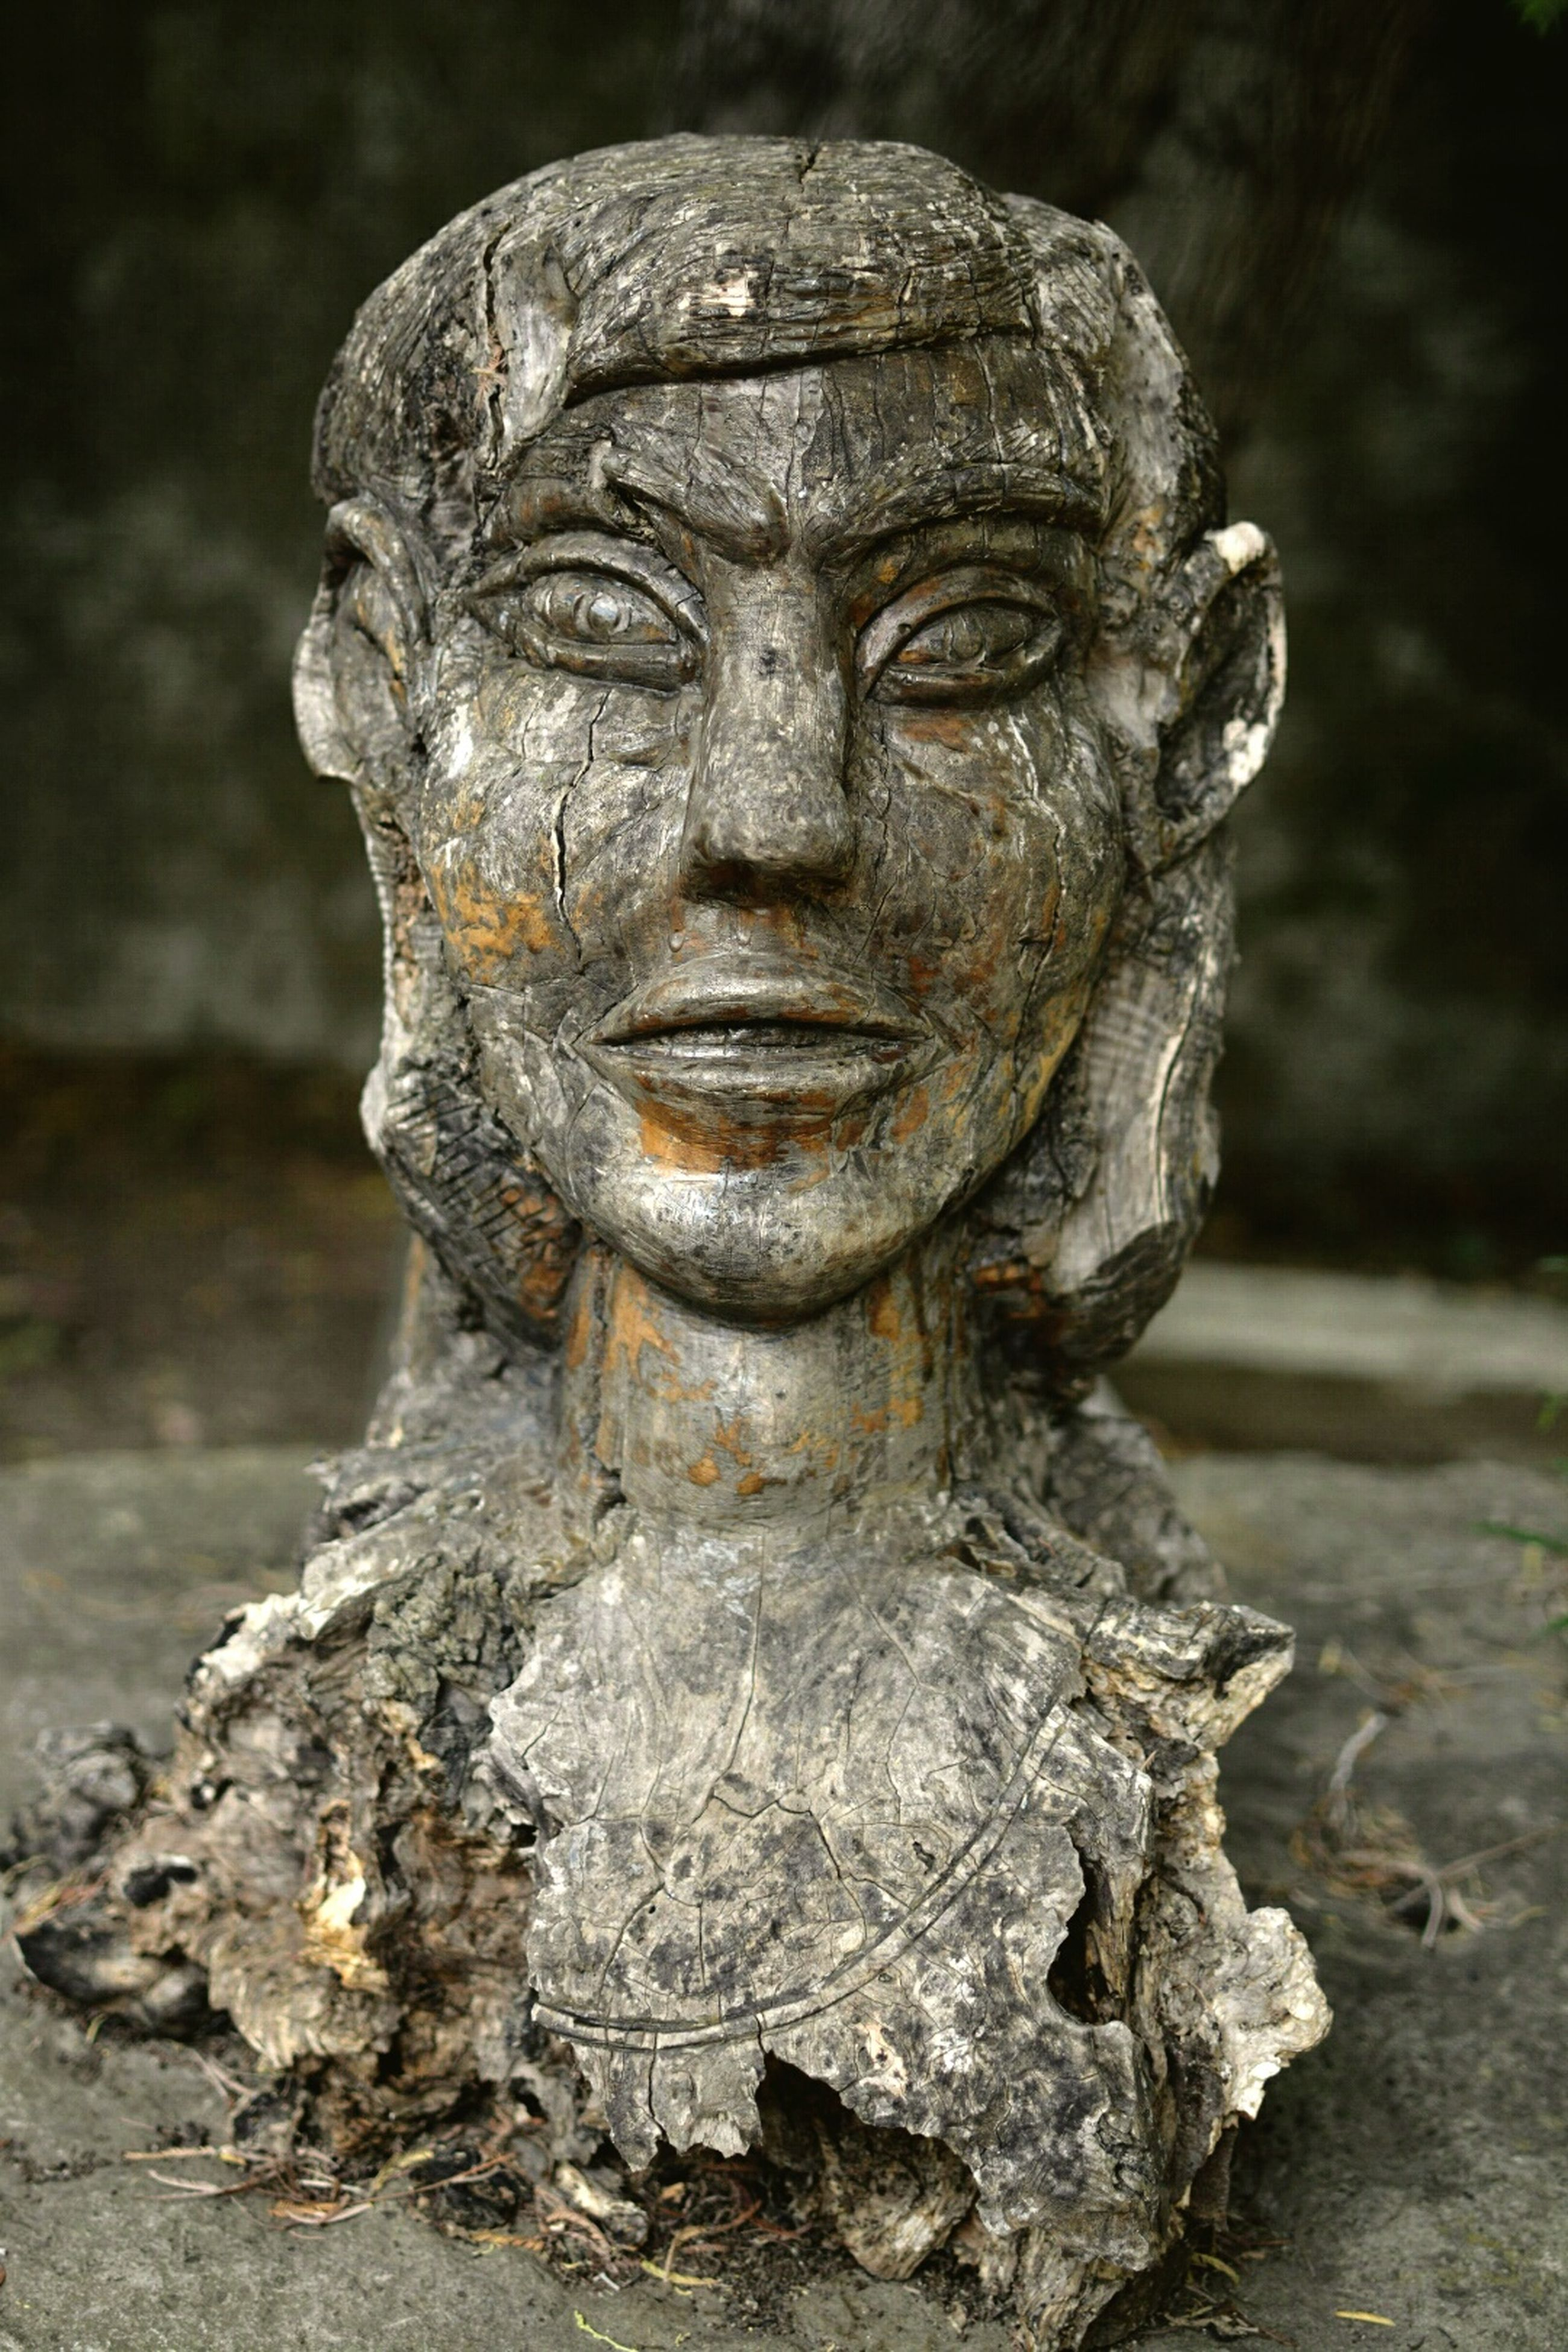 human representation, statue, sculpture, art and craft, art, creativity, carving - craft product, close-up, focus on foreground, old, stone material, weathered, stone, history, no people, carving, outdoors, religion